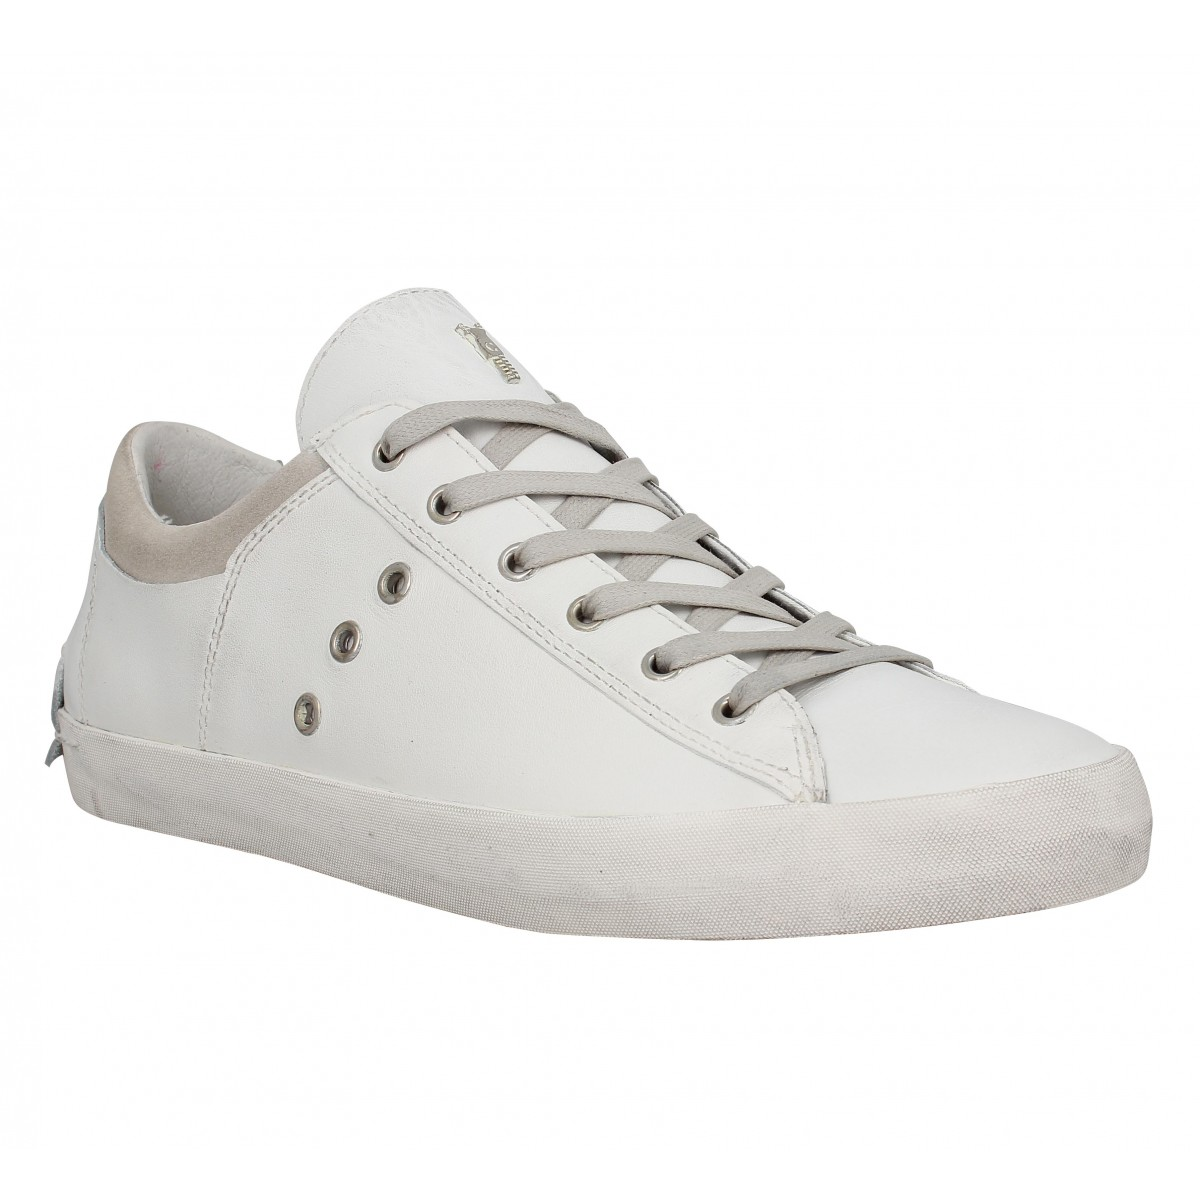 Baskets CRIME 11000 cuir Homme Blanc